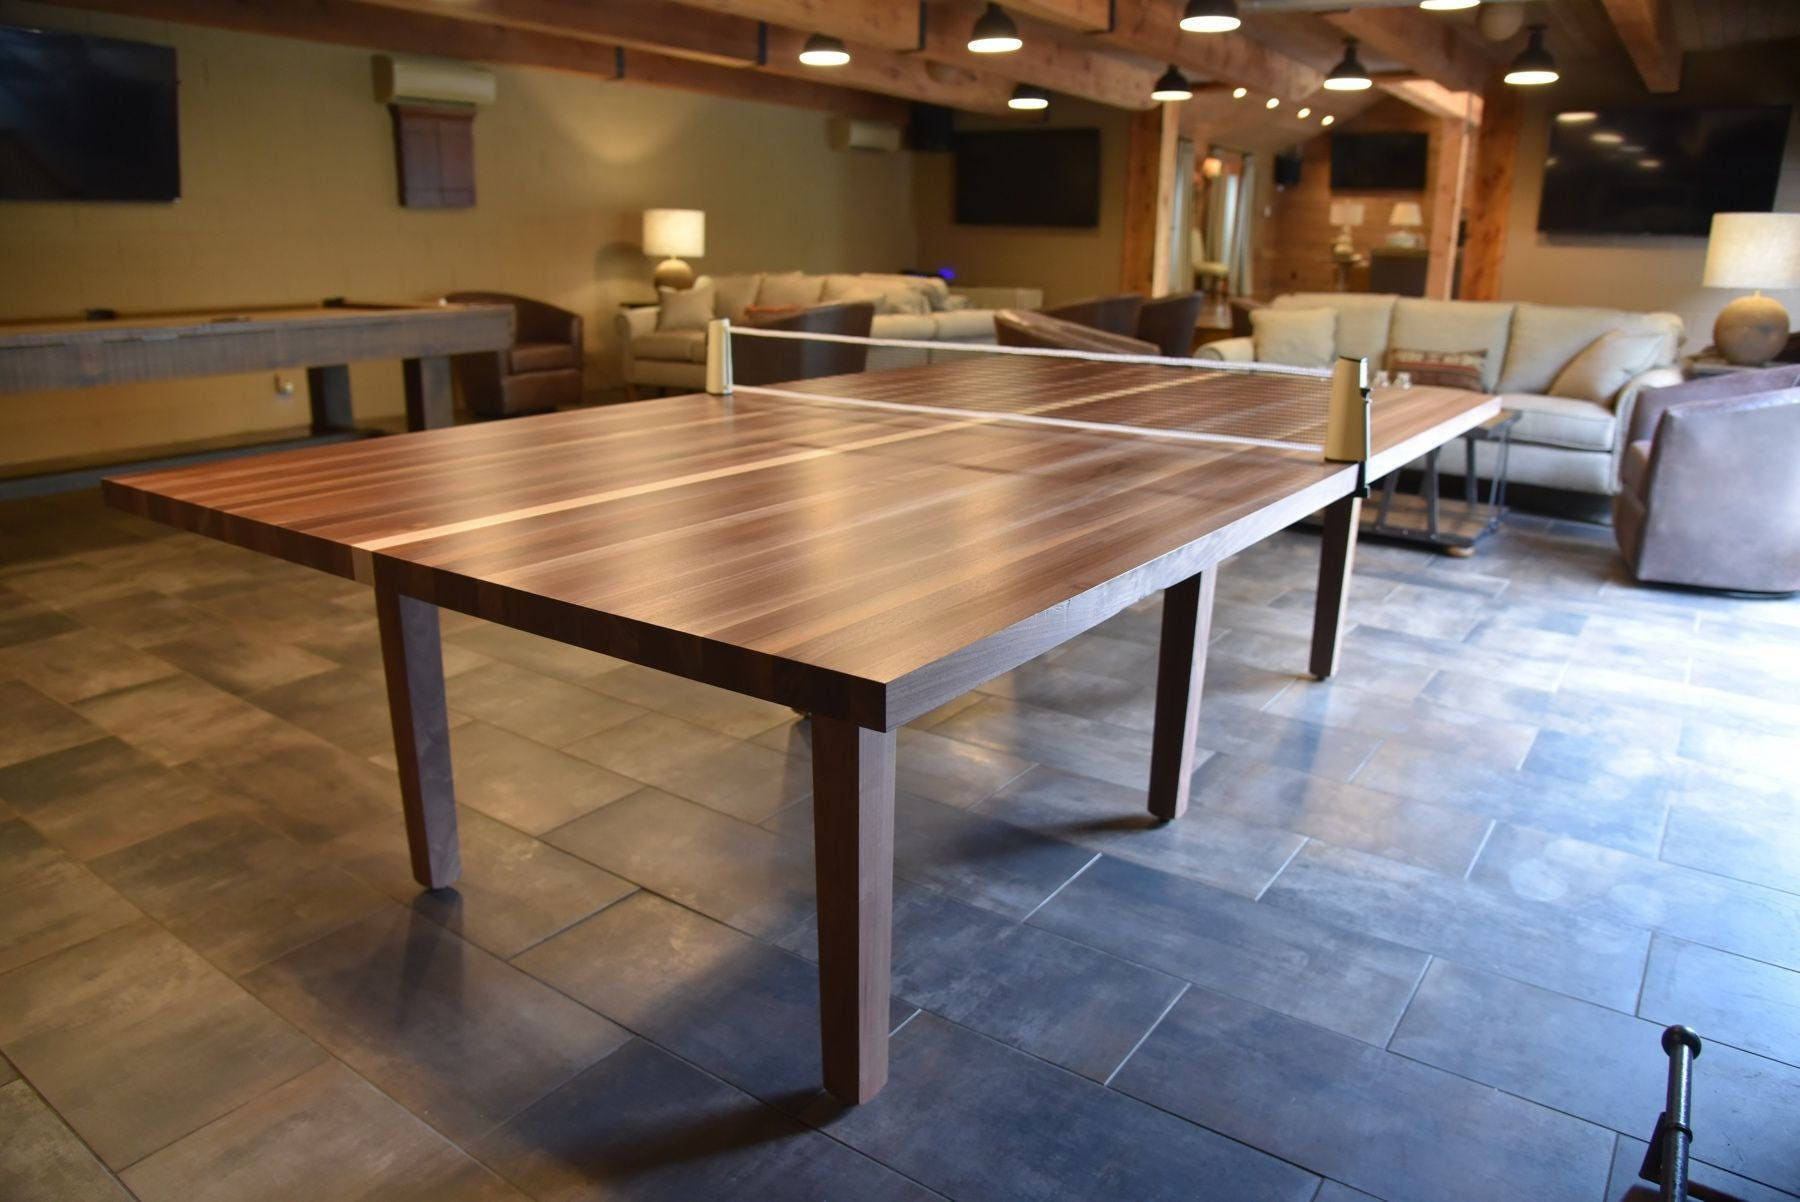 Incroyable Custom Wood Ping Pong Table Table Tennis Table Conference Table 2 In 1  Dining And Table Tennis Table With Retractable Net